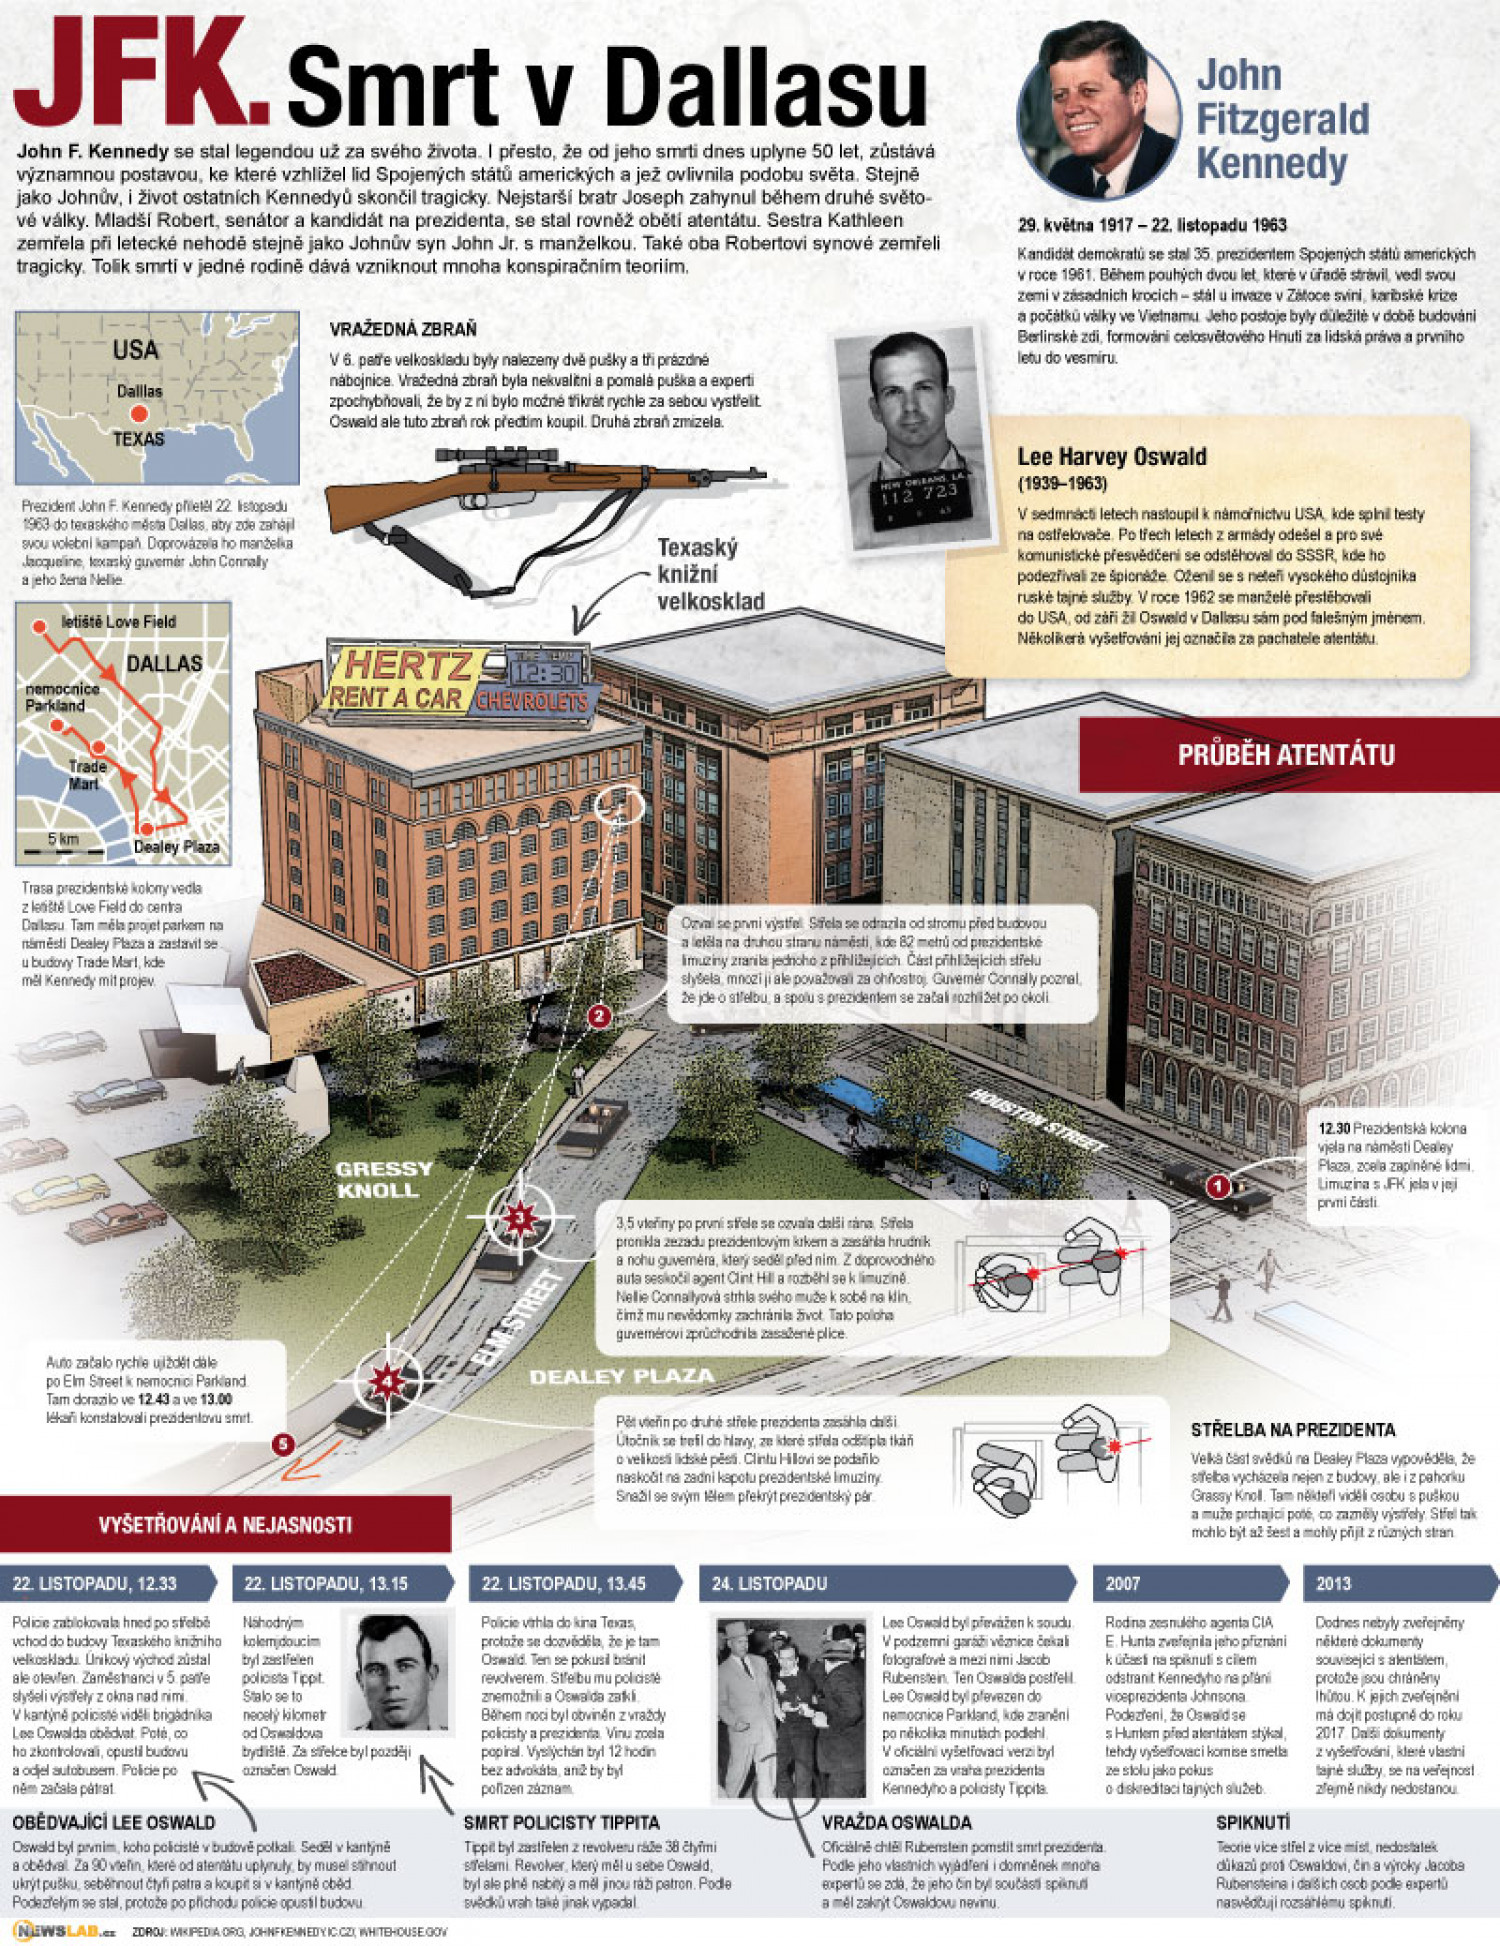 Assassination of JFK Infographic